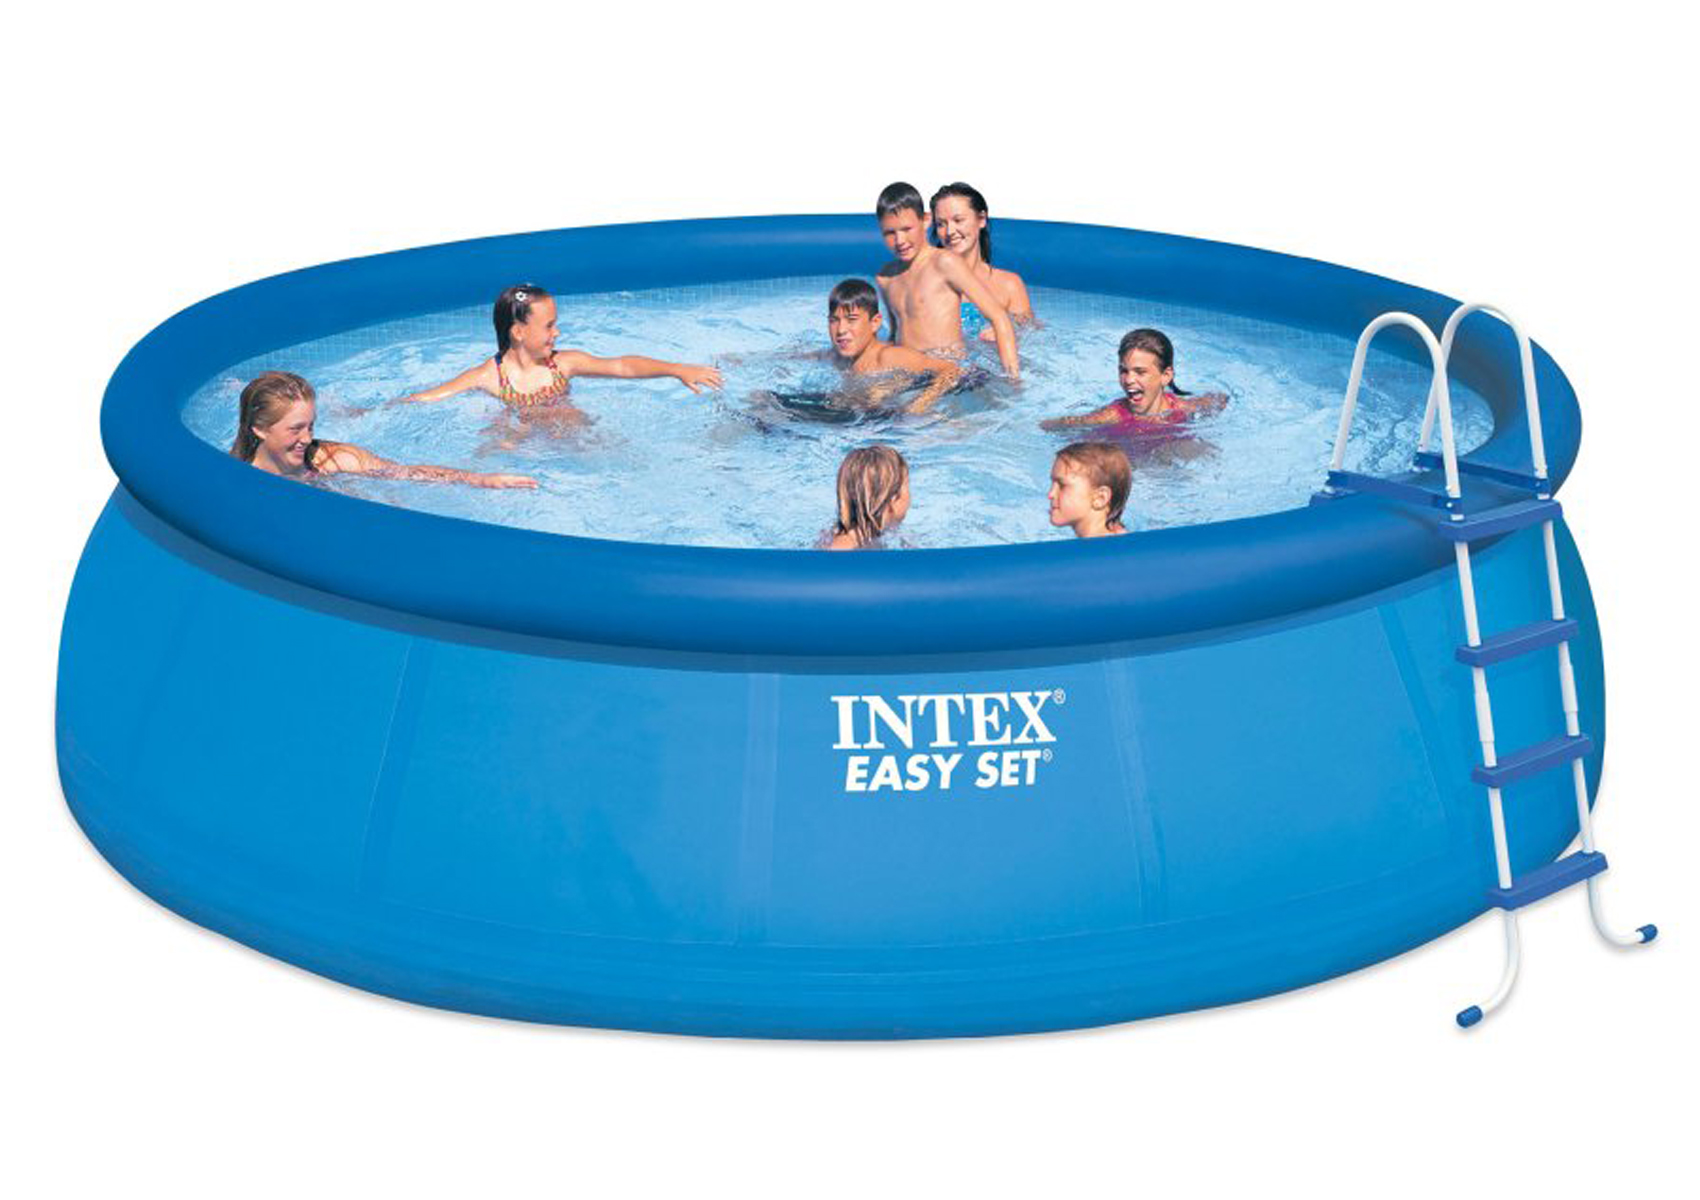 intex 15 39 ft round x 48 deep easy set above ground swimming pool model 28167eh ebay. Black Bedroom Furniture Sets. Home Design Ideas